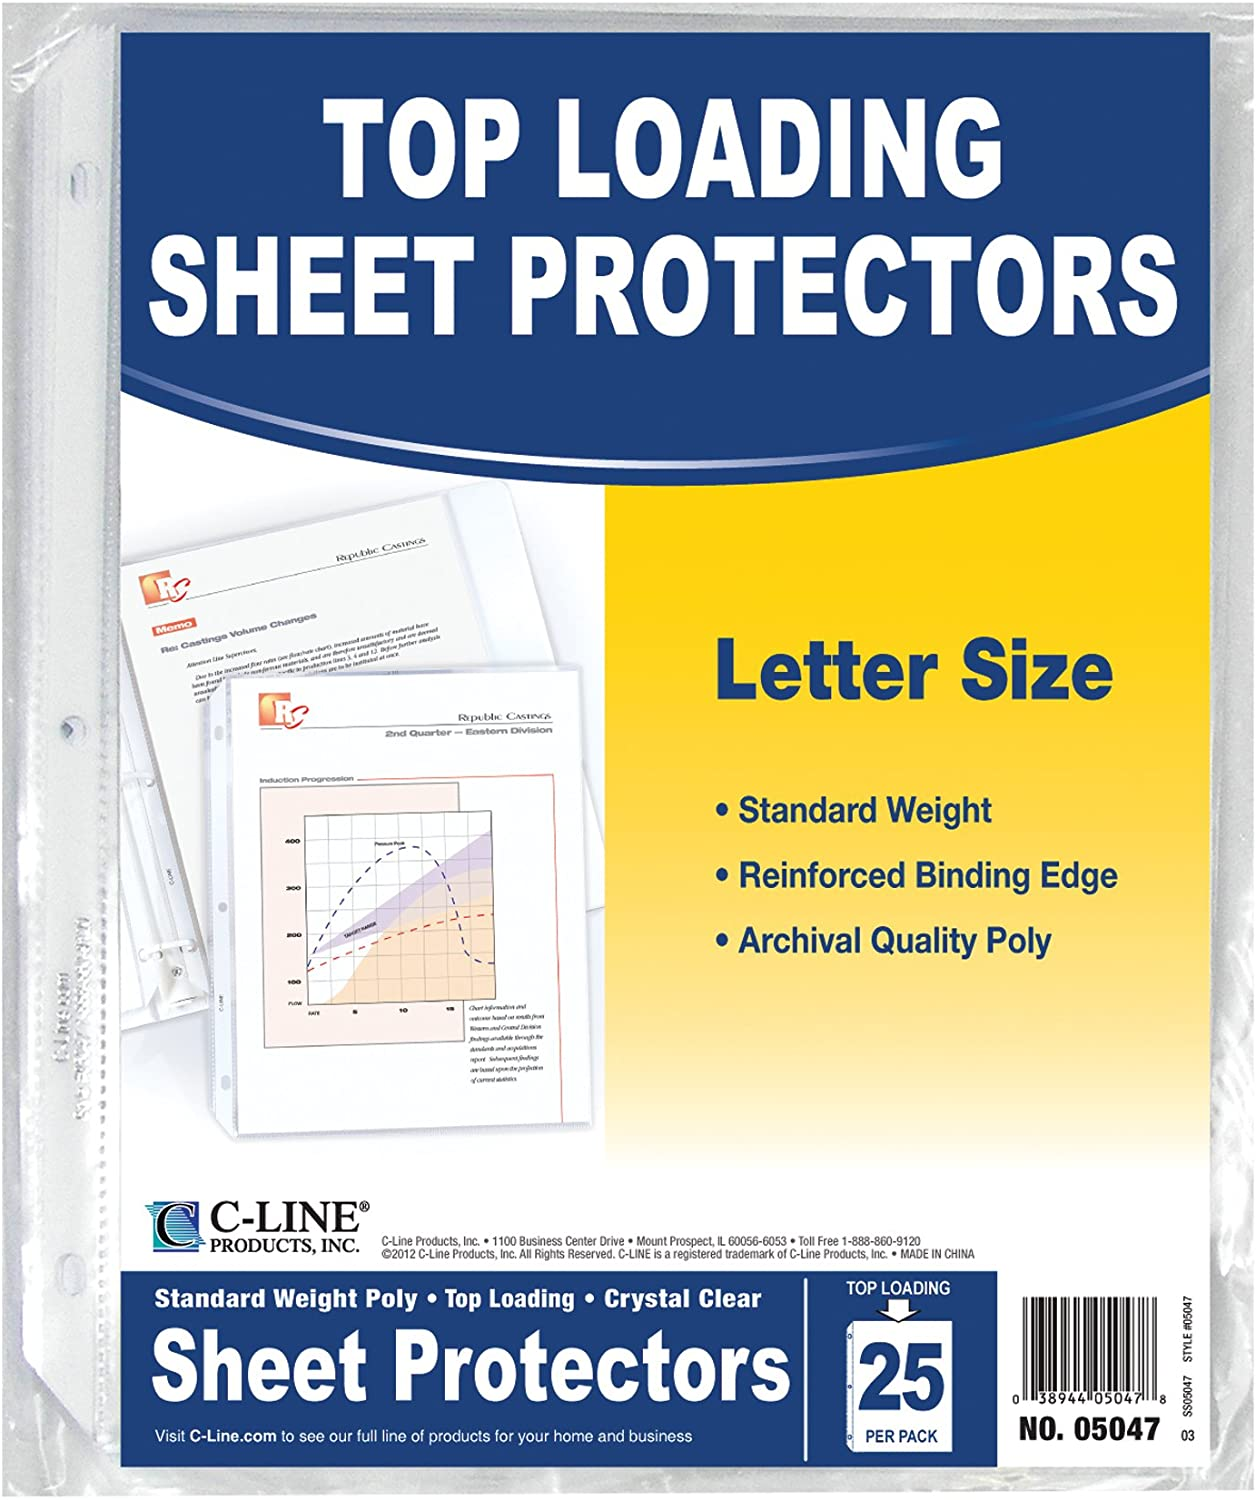 C-Line Top Loading Standard Weight Poly Sheet Protectors, Clear, 8.5 x 11, 25 Pack (05047)